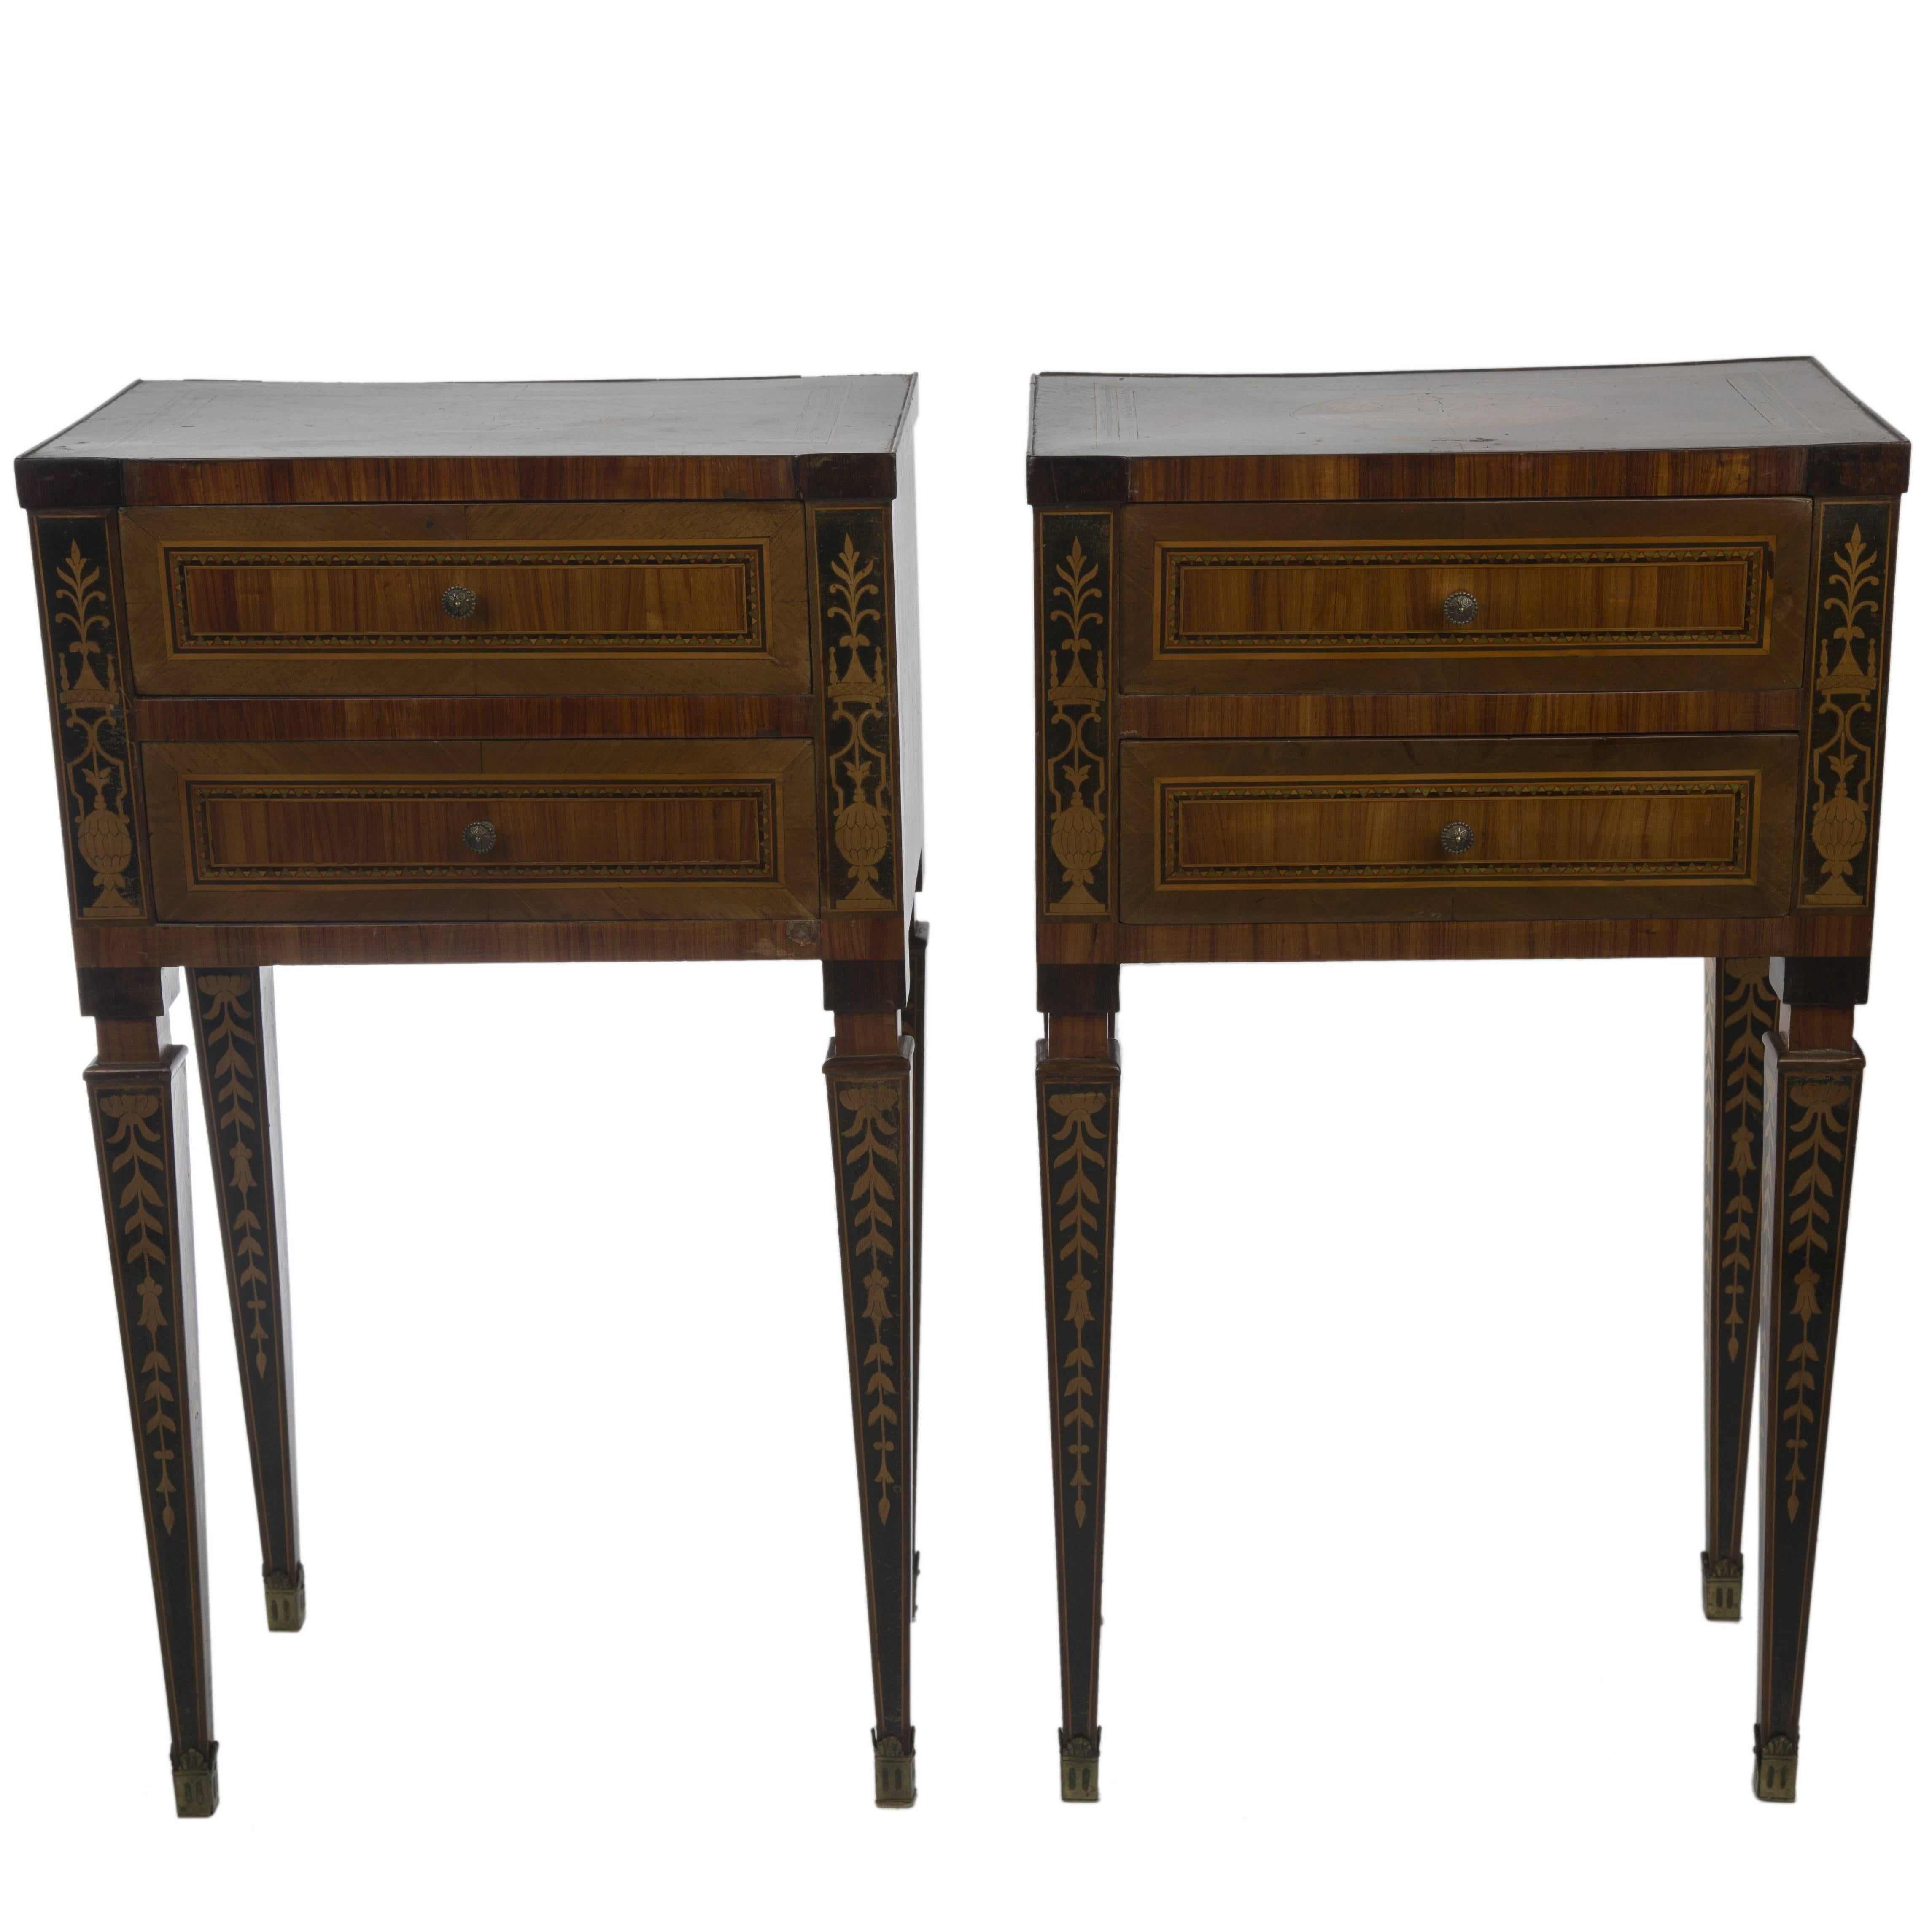 Pair of Louis XVI Style Marquetry Night Tables